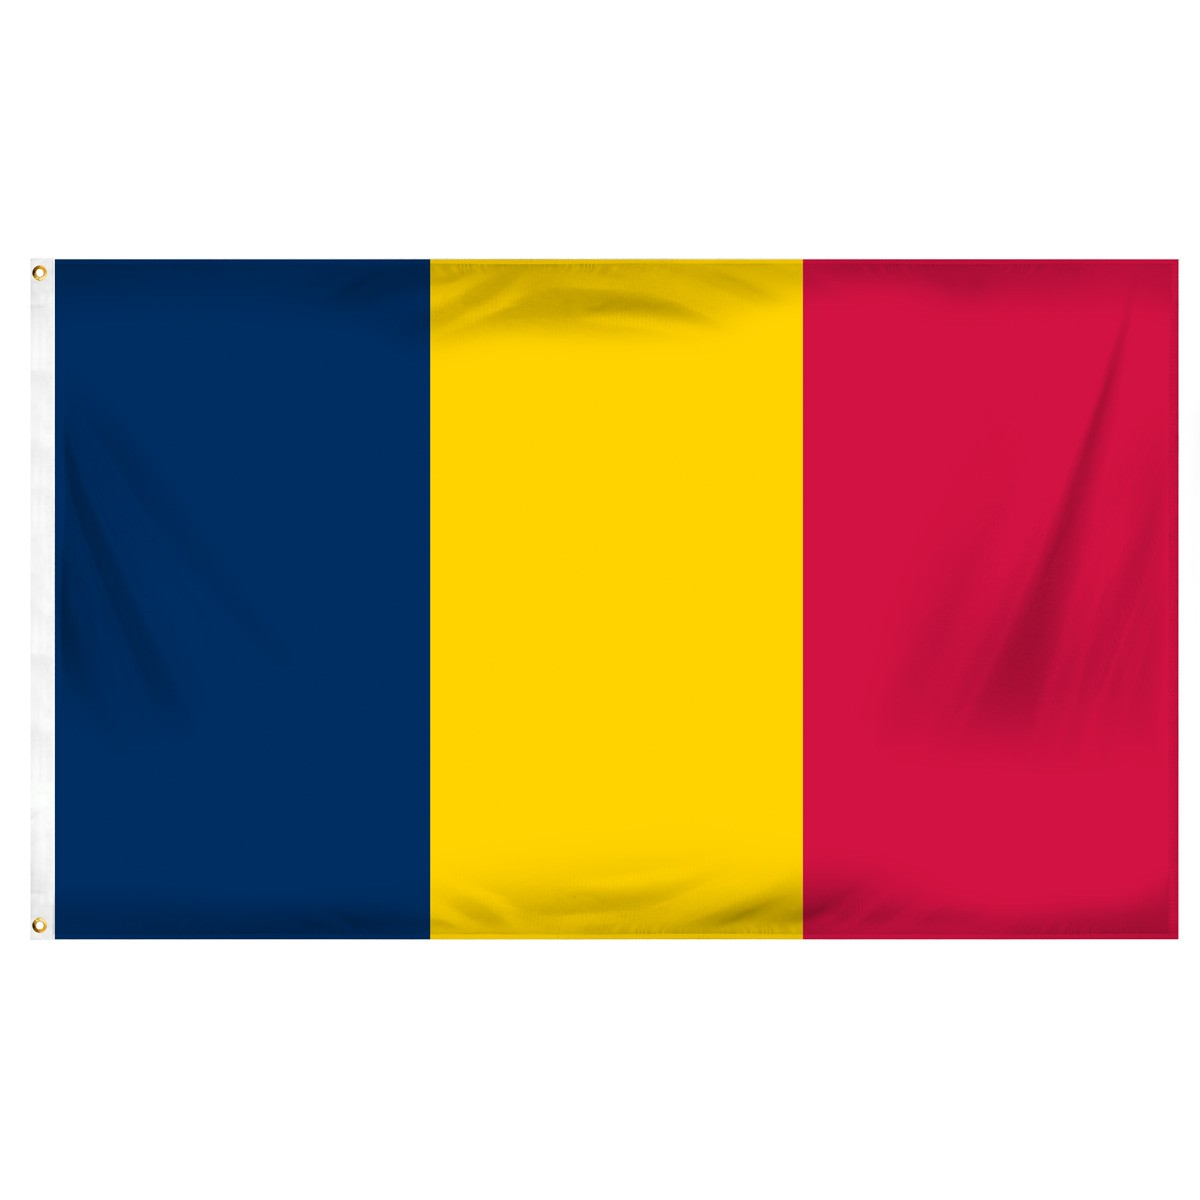 Chad Satin Office Flags